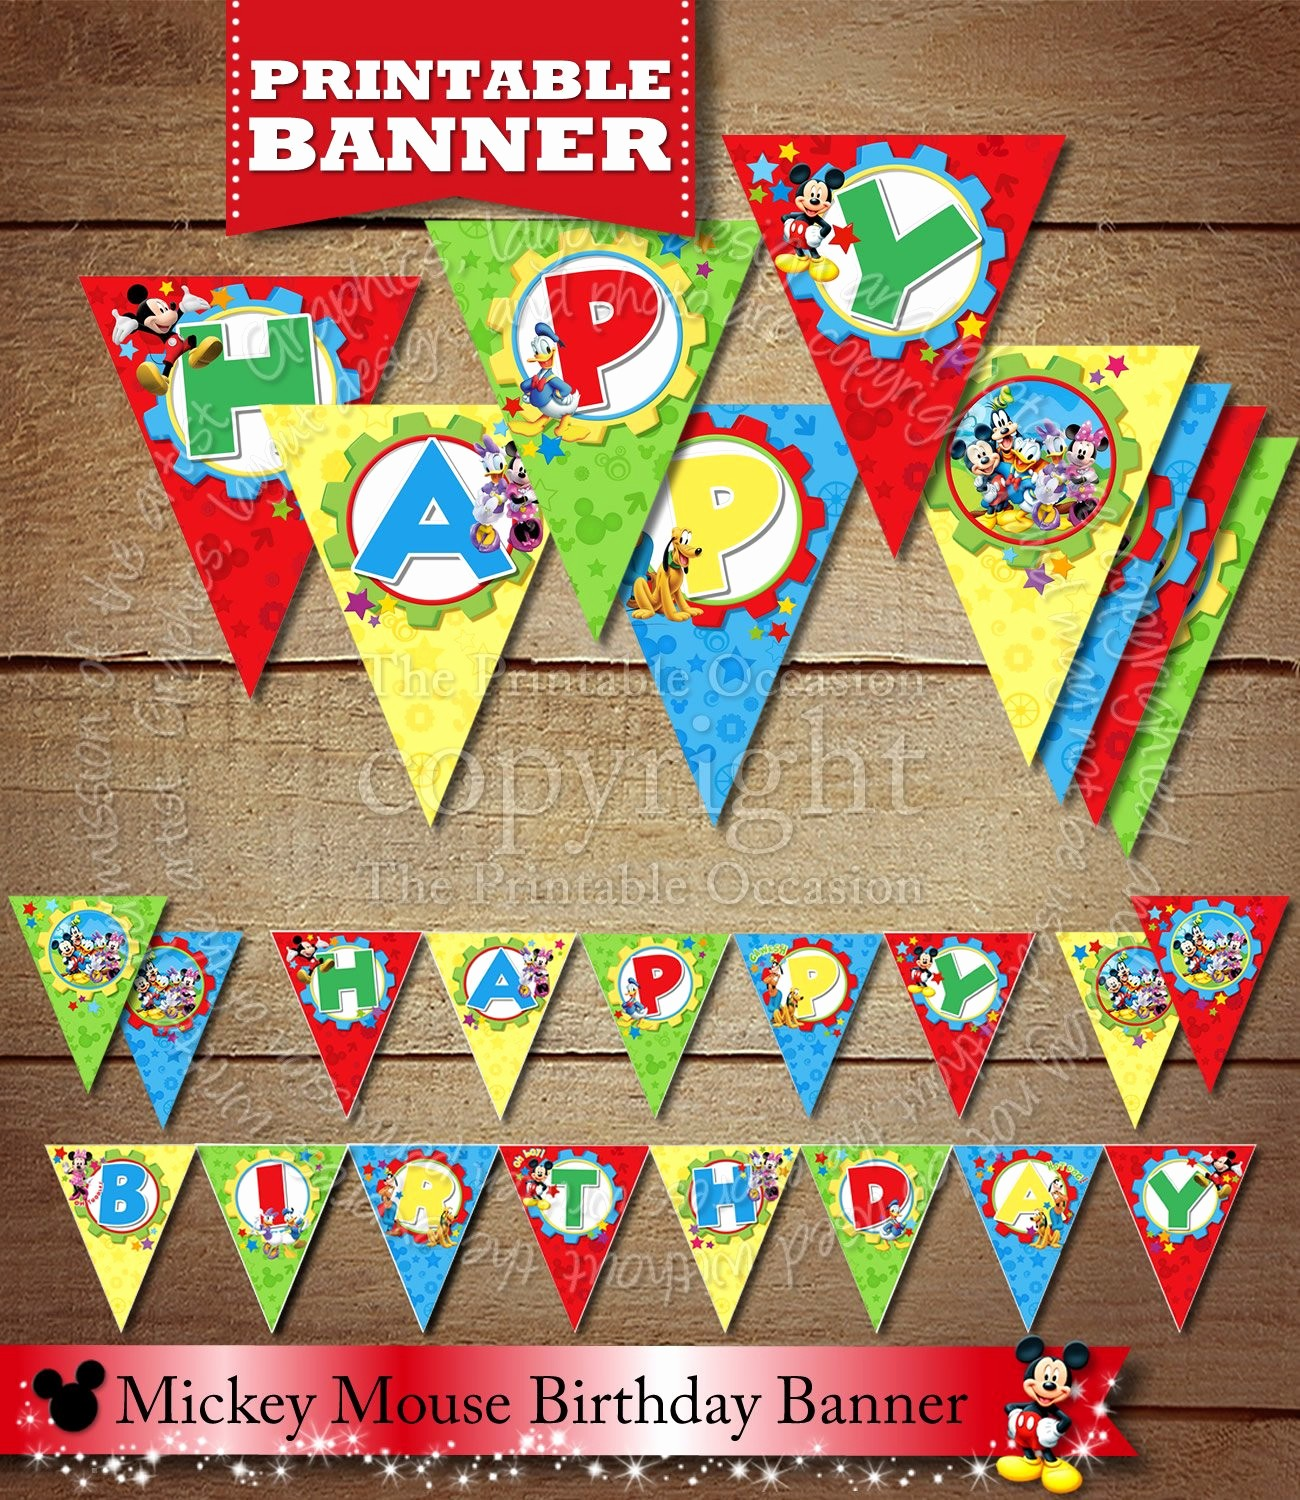 Happy Birthday Banner Print Out Fresh Printable Happy Birthday Pennant Banner Printable Mickey